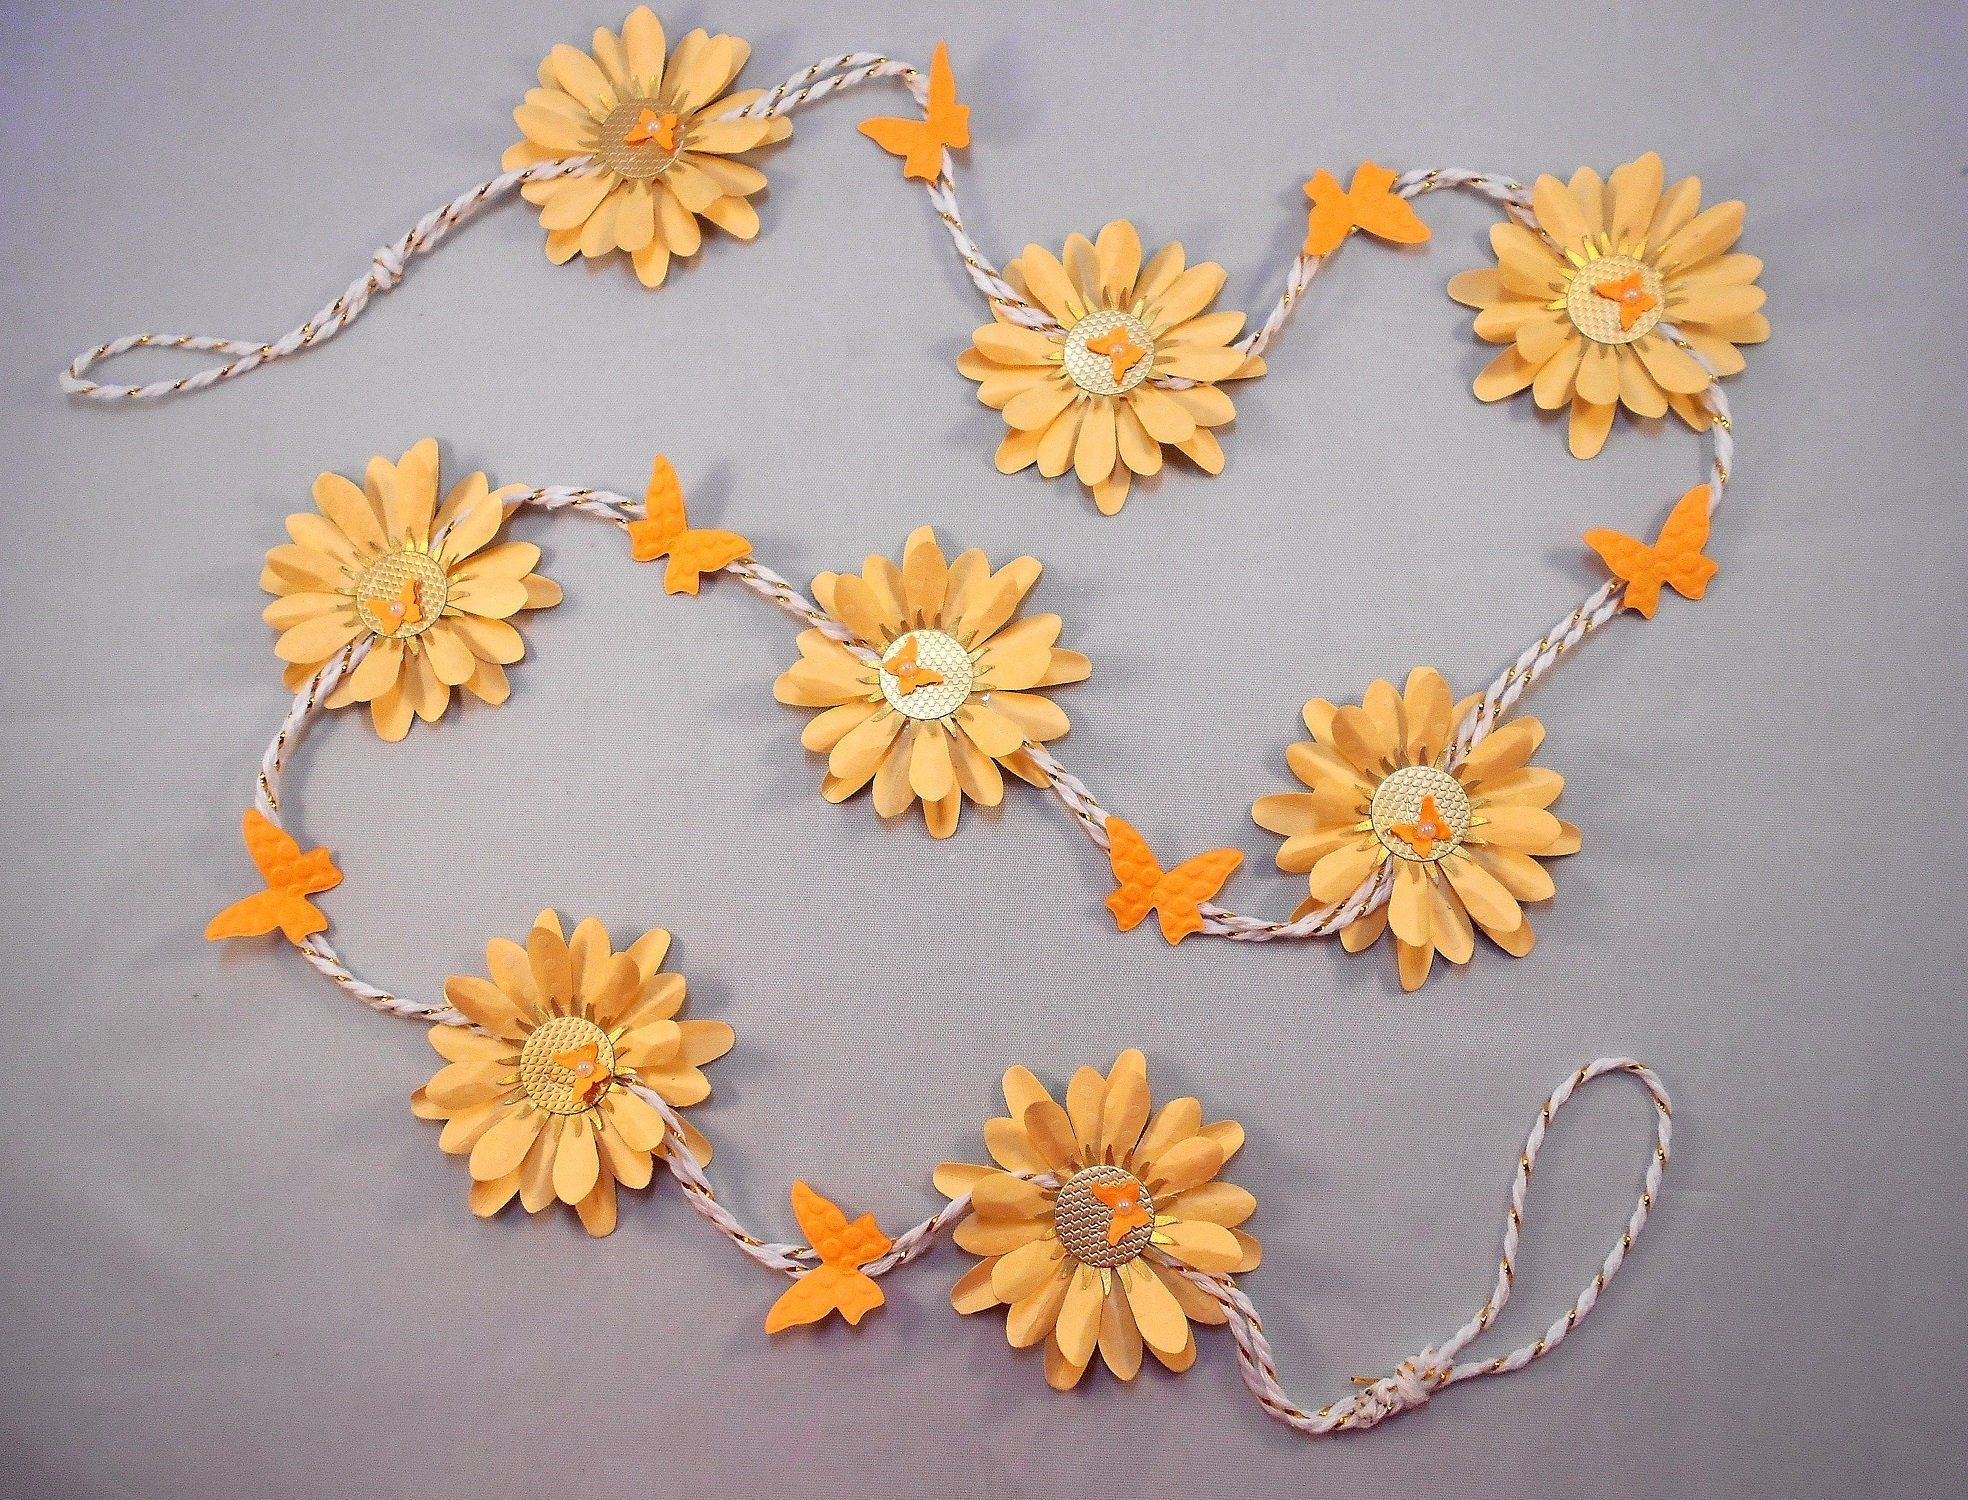 Paper Flower Garland with Butterflies, Party Decor, Fireplace Mantle Garland, Baby Shower, Ladies Luncheon Table Decoration - READY TO SHIP #paperflowergarlands